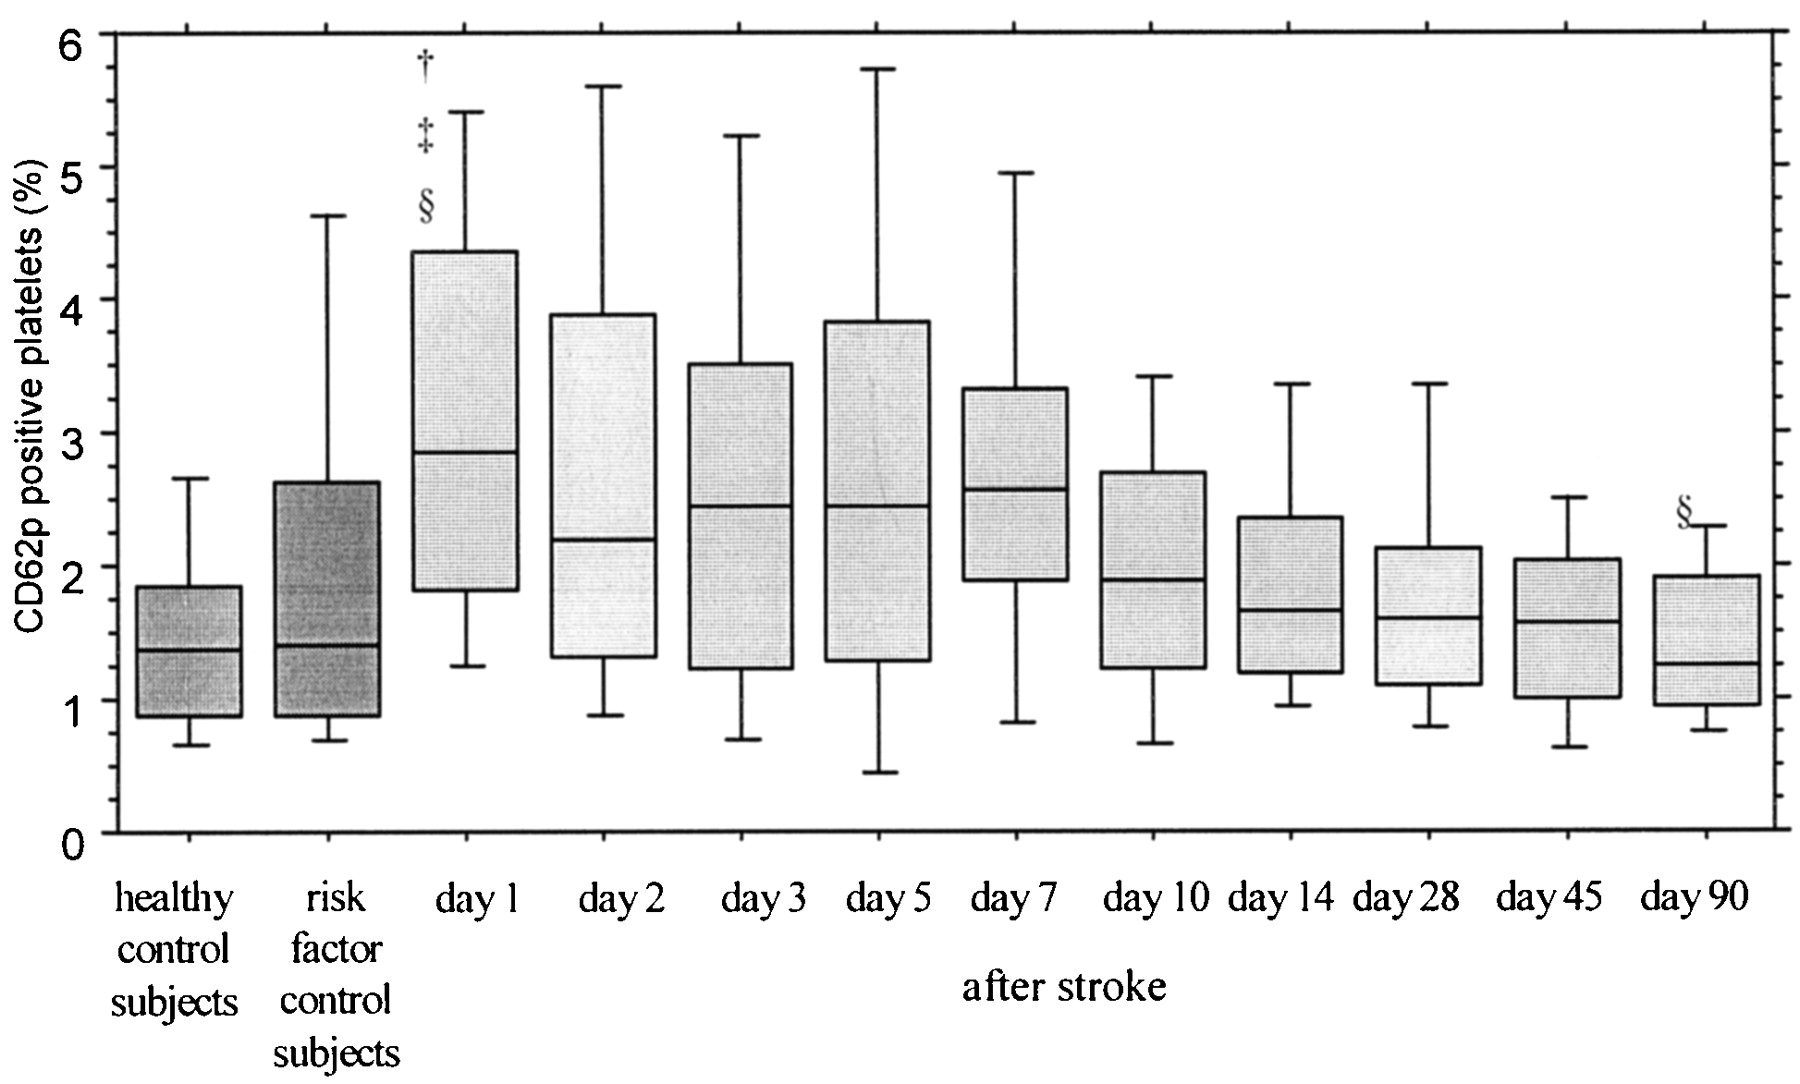 Course of Platelet Activation Markers After Ischemic Stroke